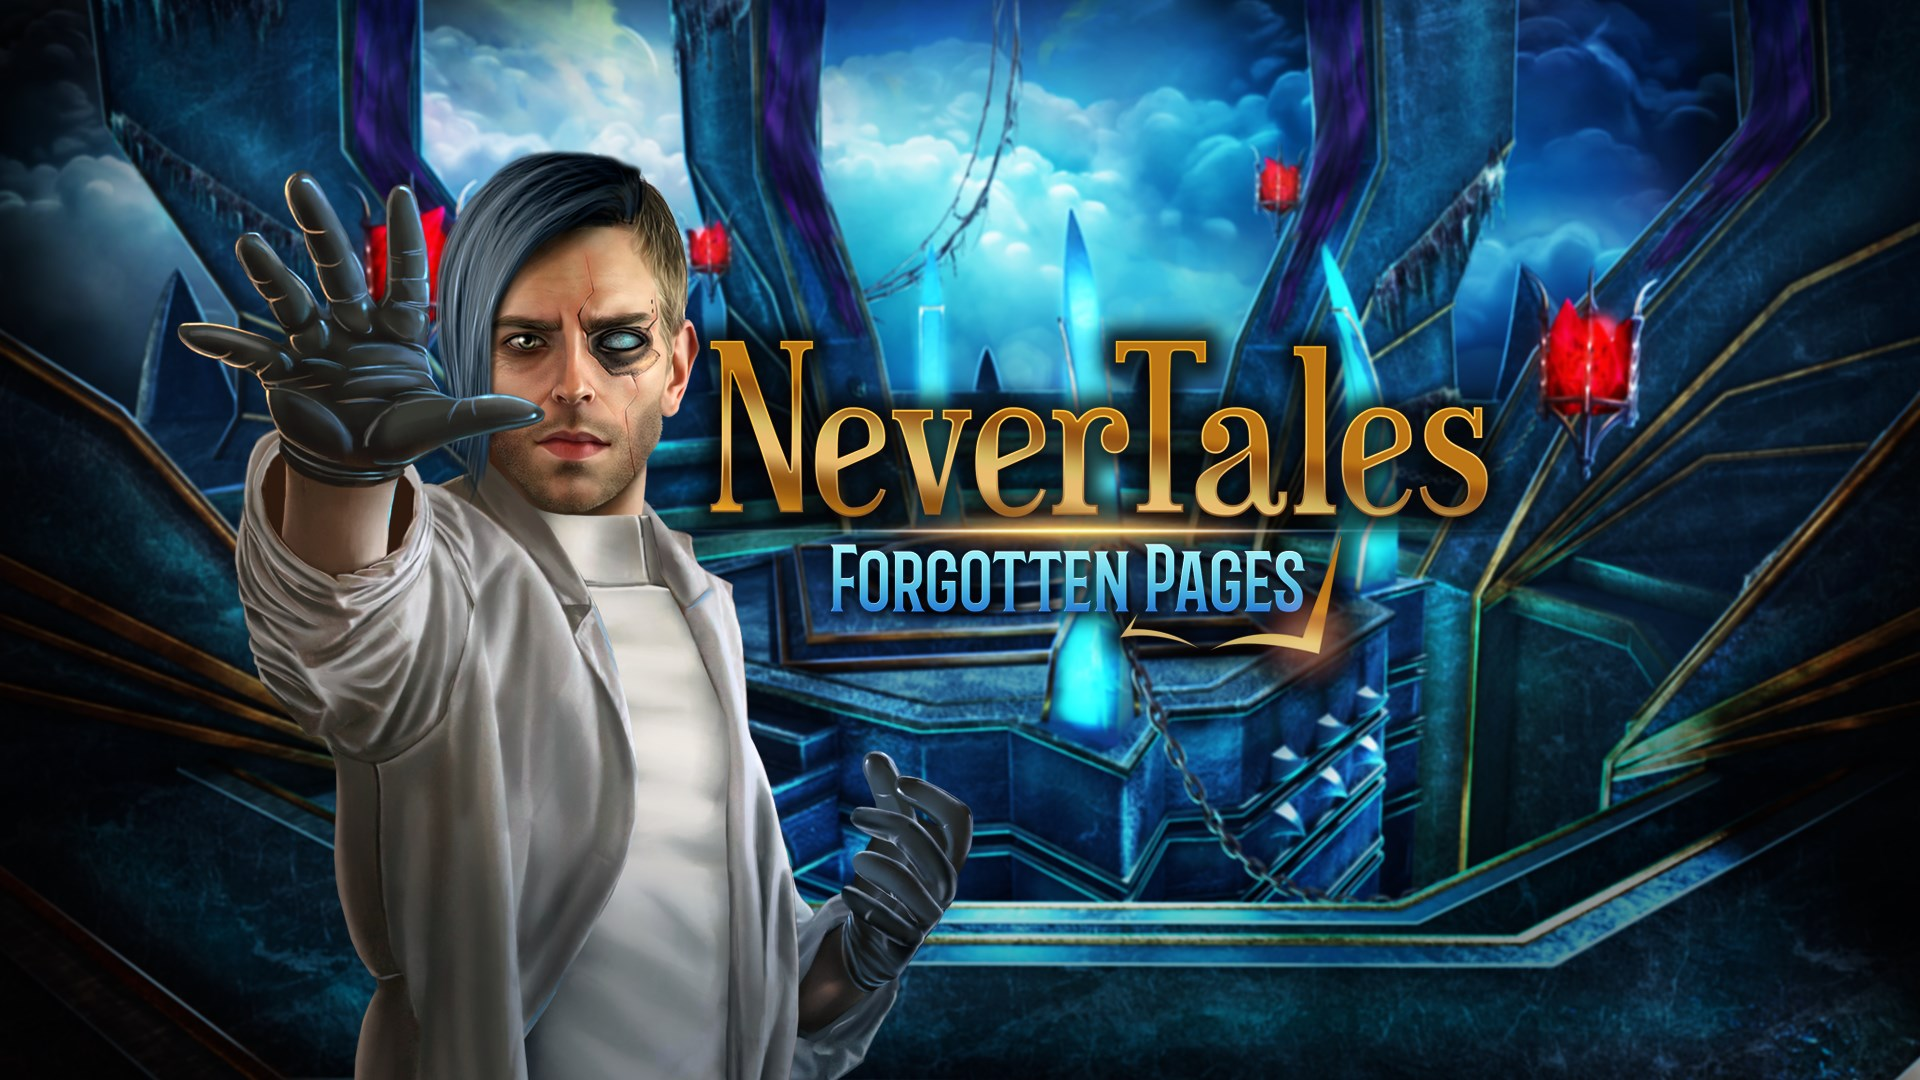 Buy Nevertales: Forgotten Pages - Microsoft Store